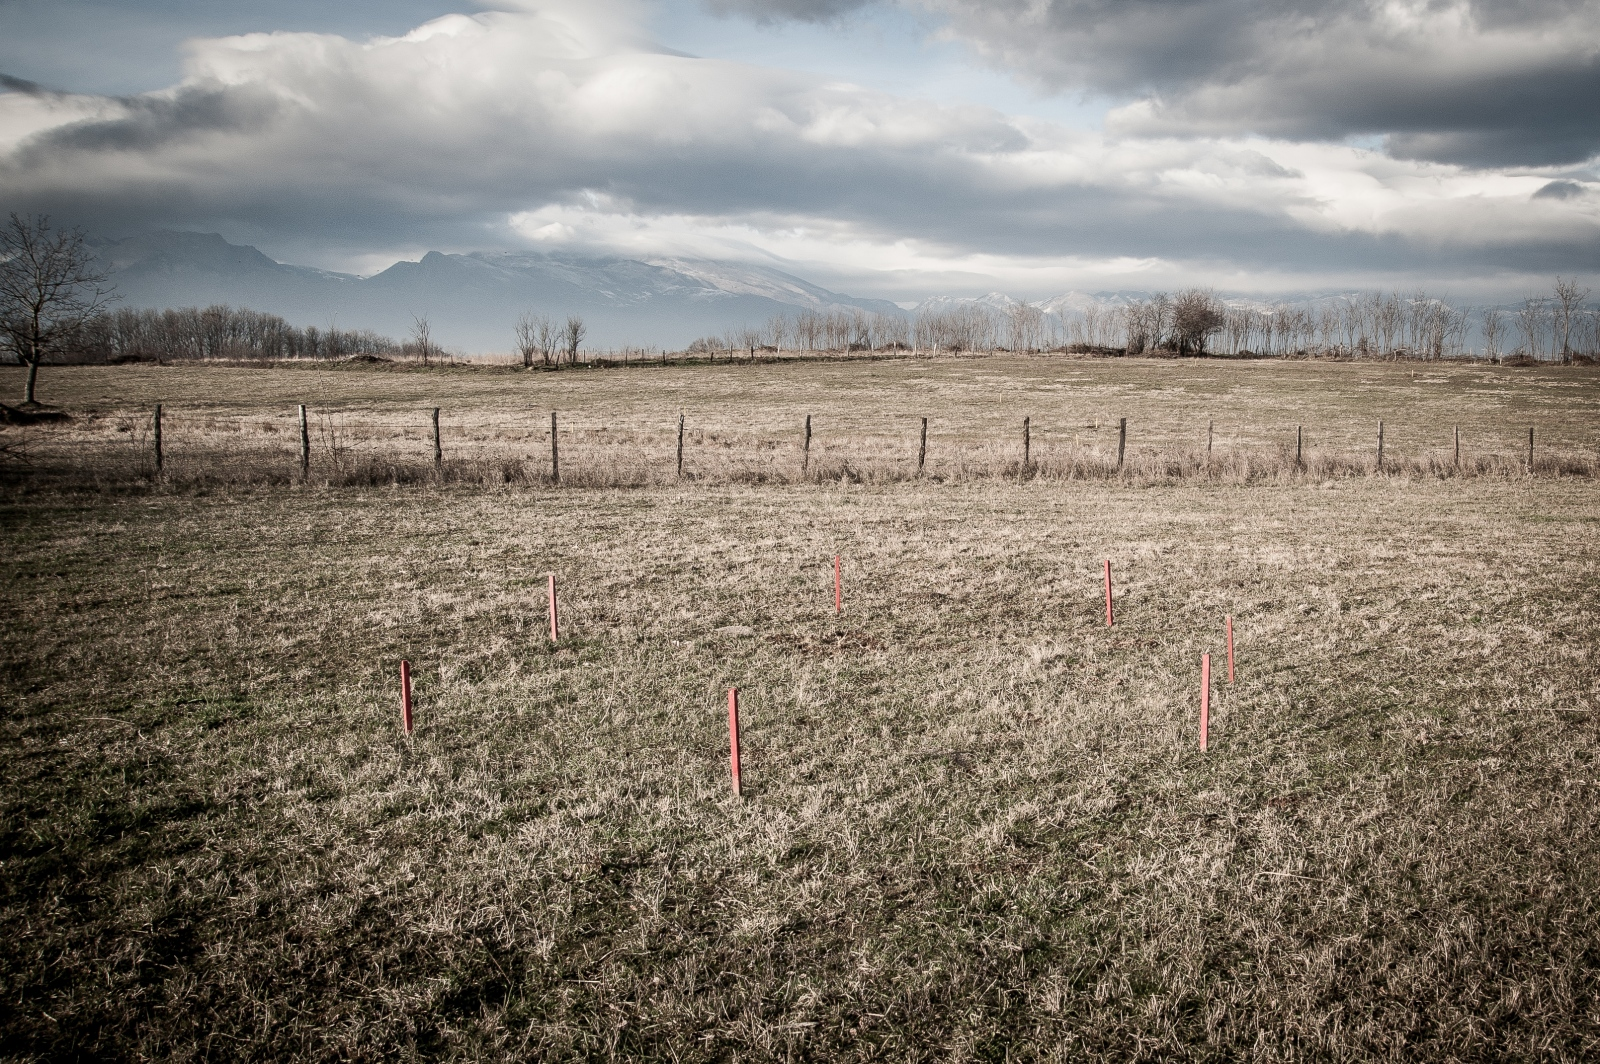 The red stakes mark a contaminated area in central Kosovo. December 2016.